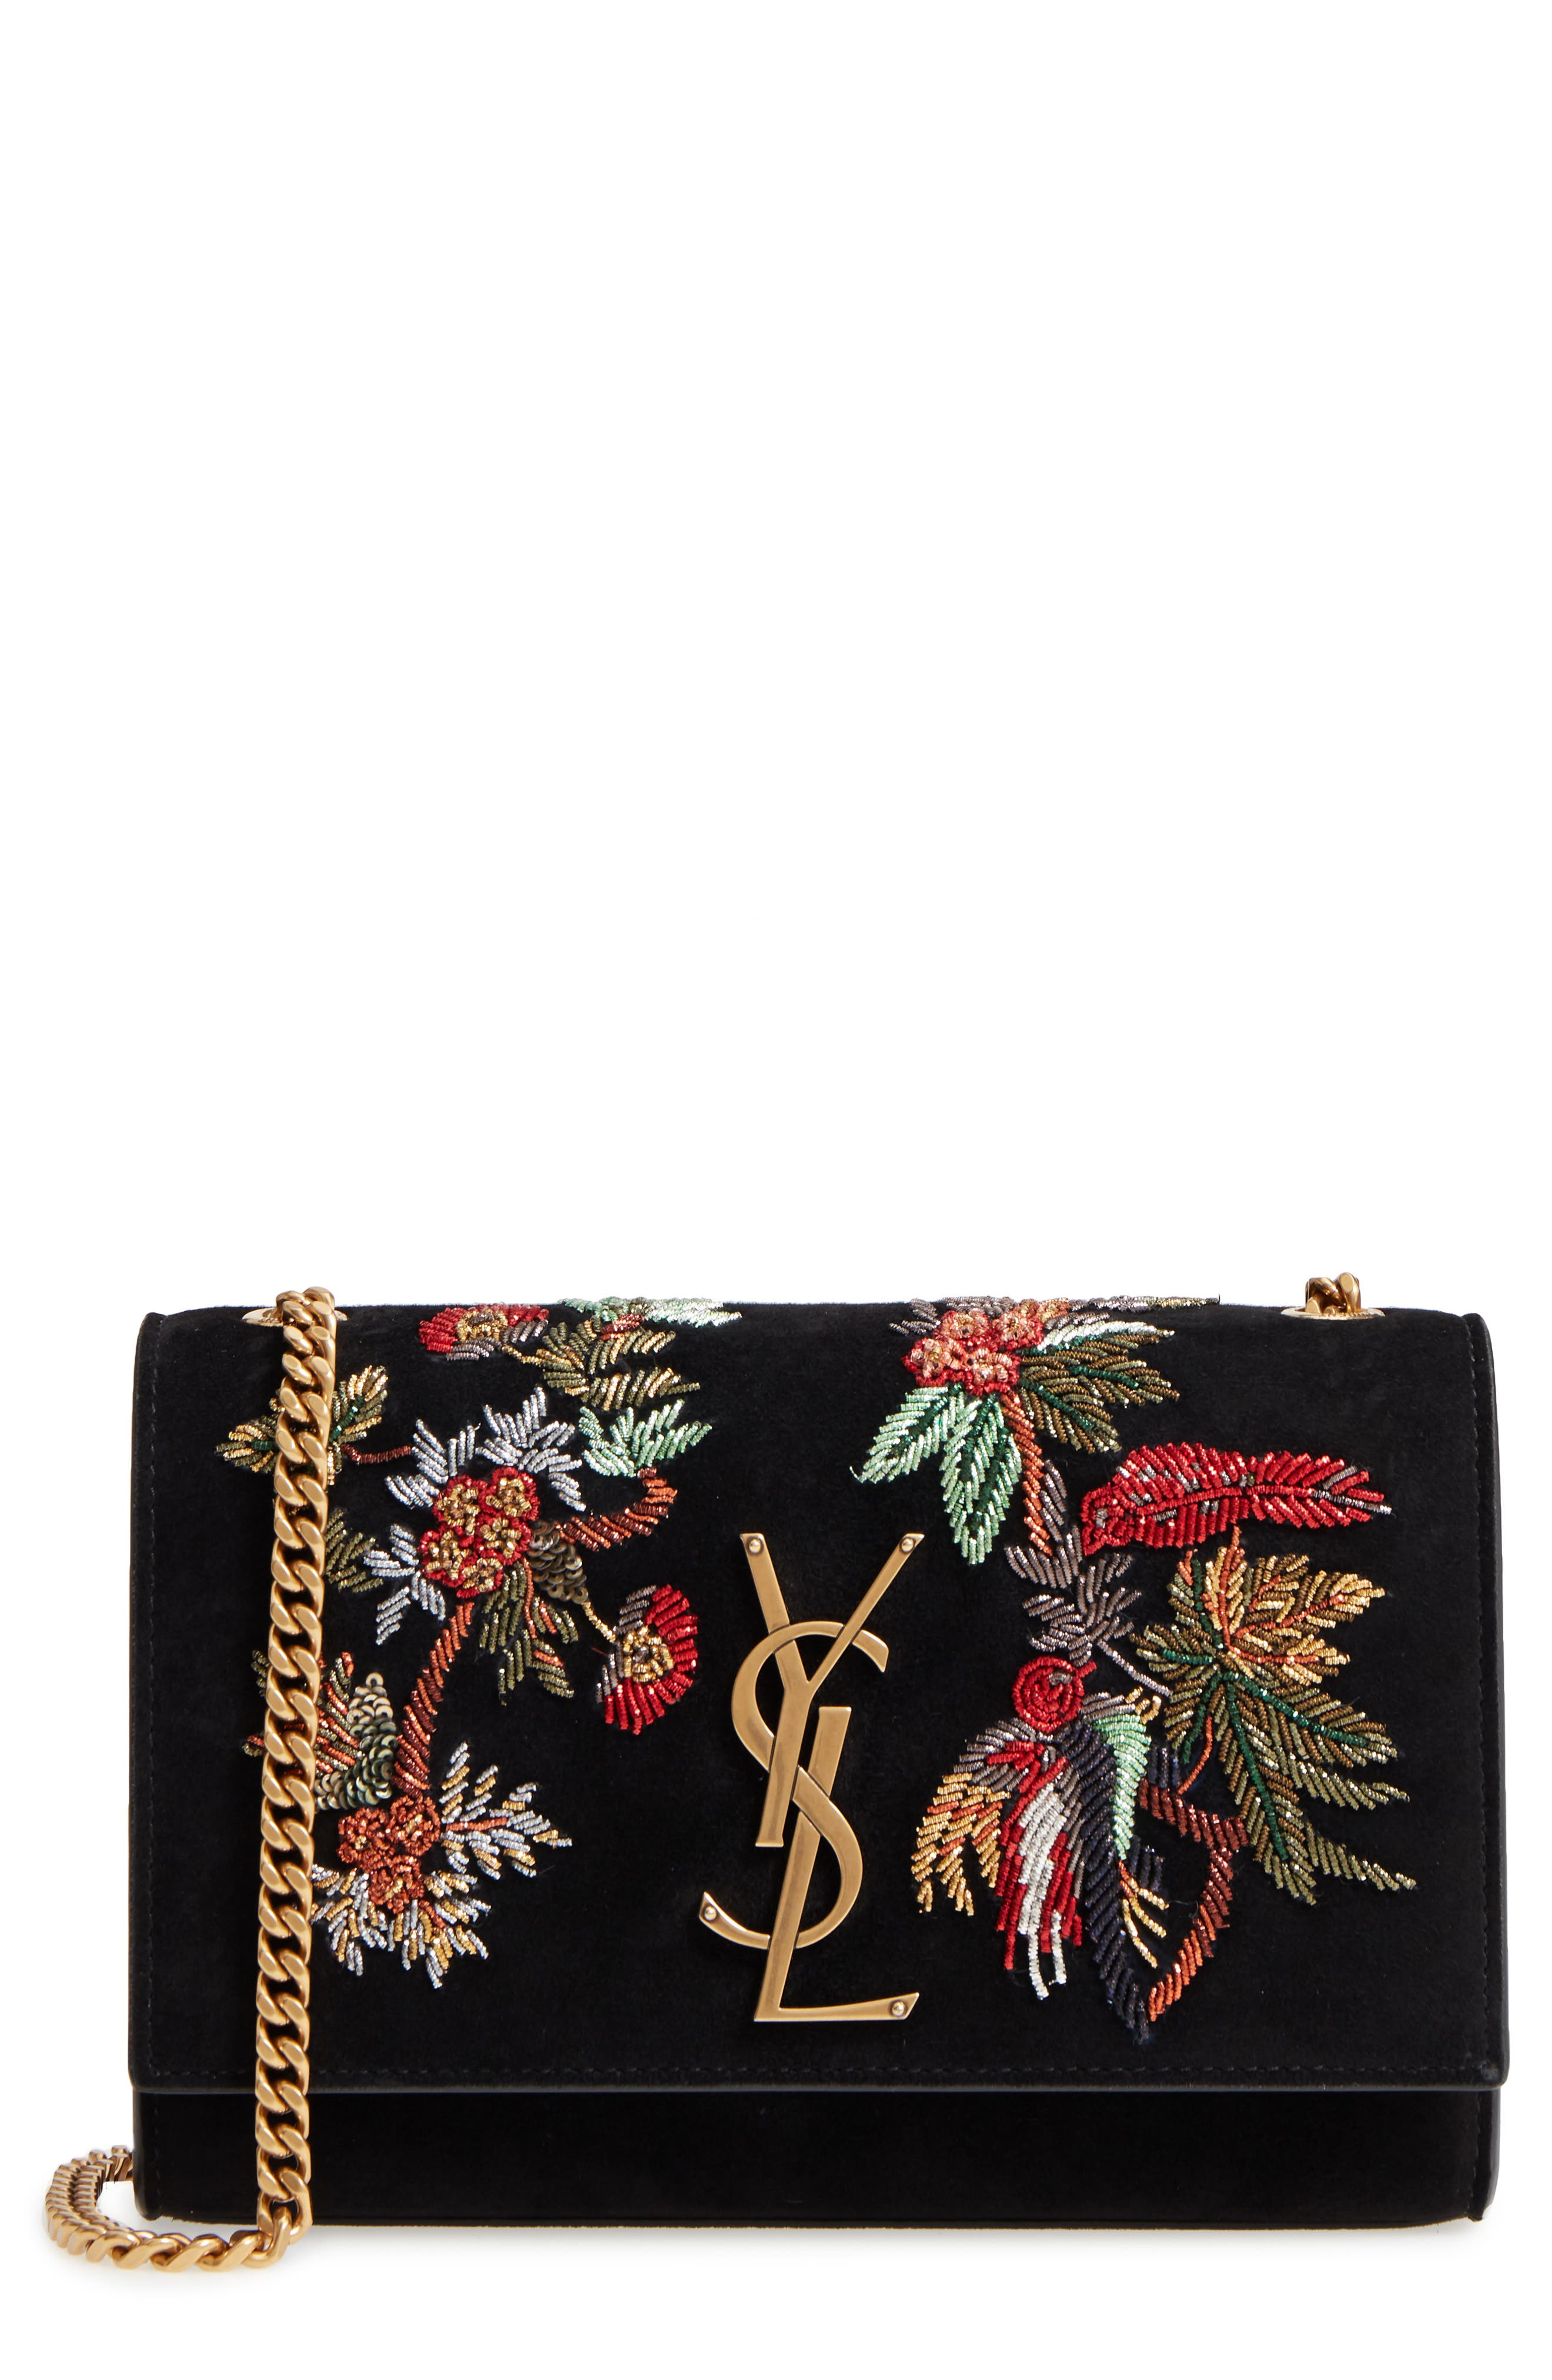 SAINT LAURENT,                             Small Kate Embroidered Suede Crossbody Bag,                             Main thumbnail 1, color,                             001